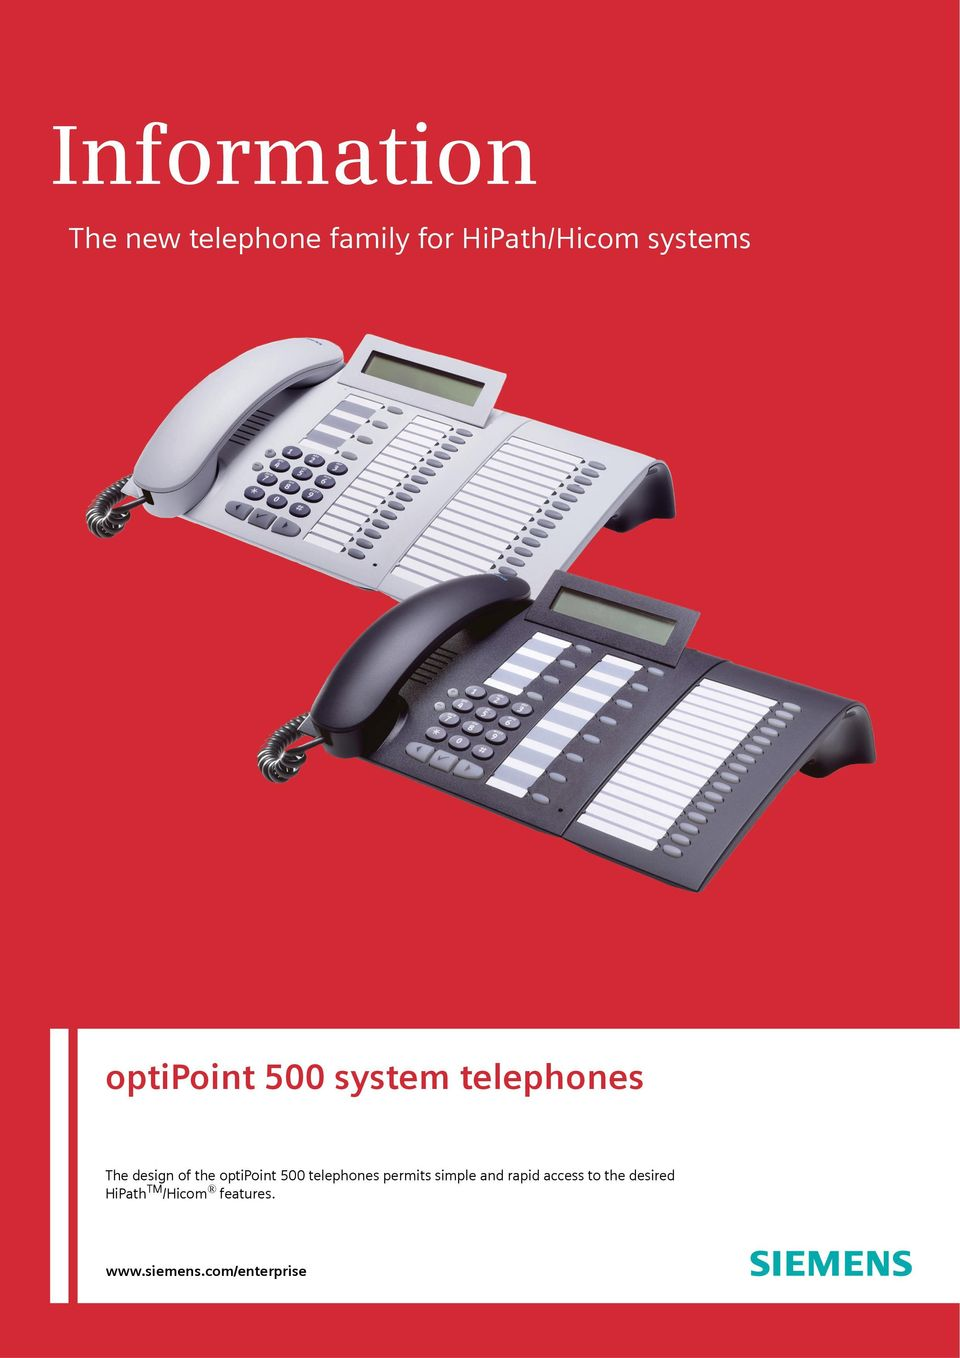 optipoint 500 telephones permits simple and rapid access to